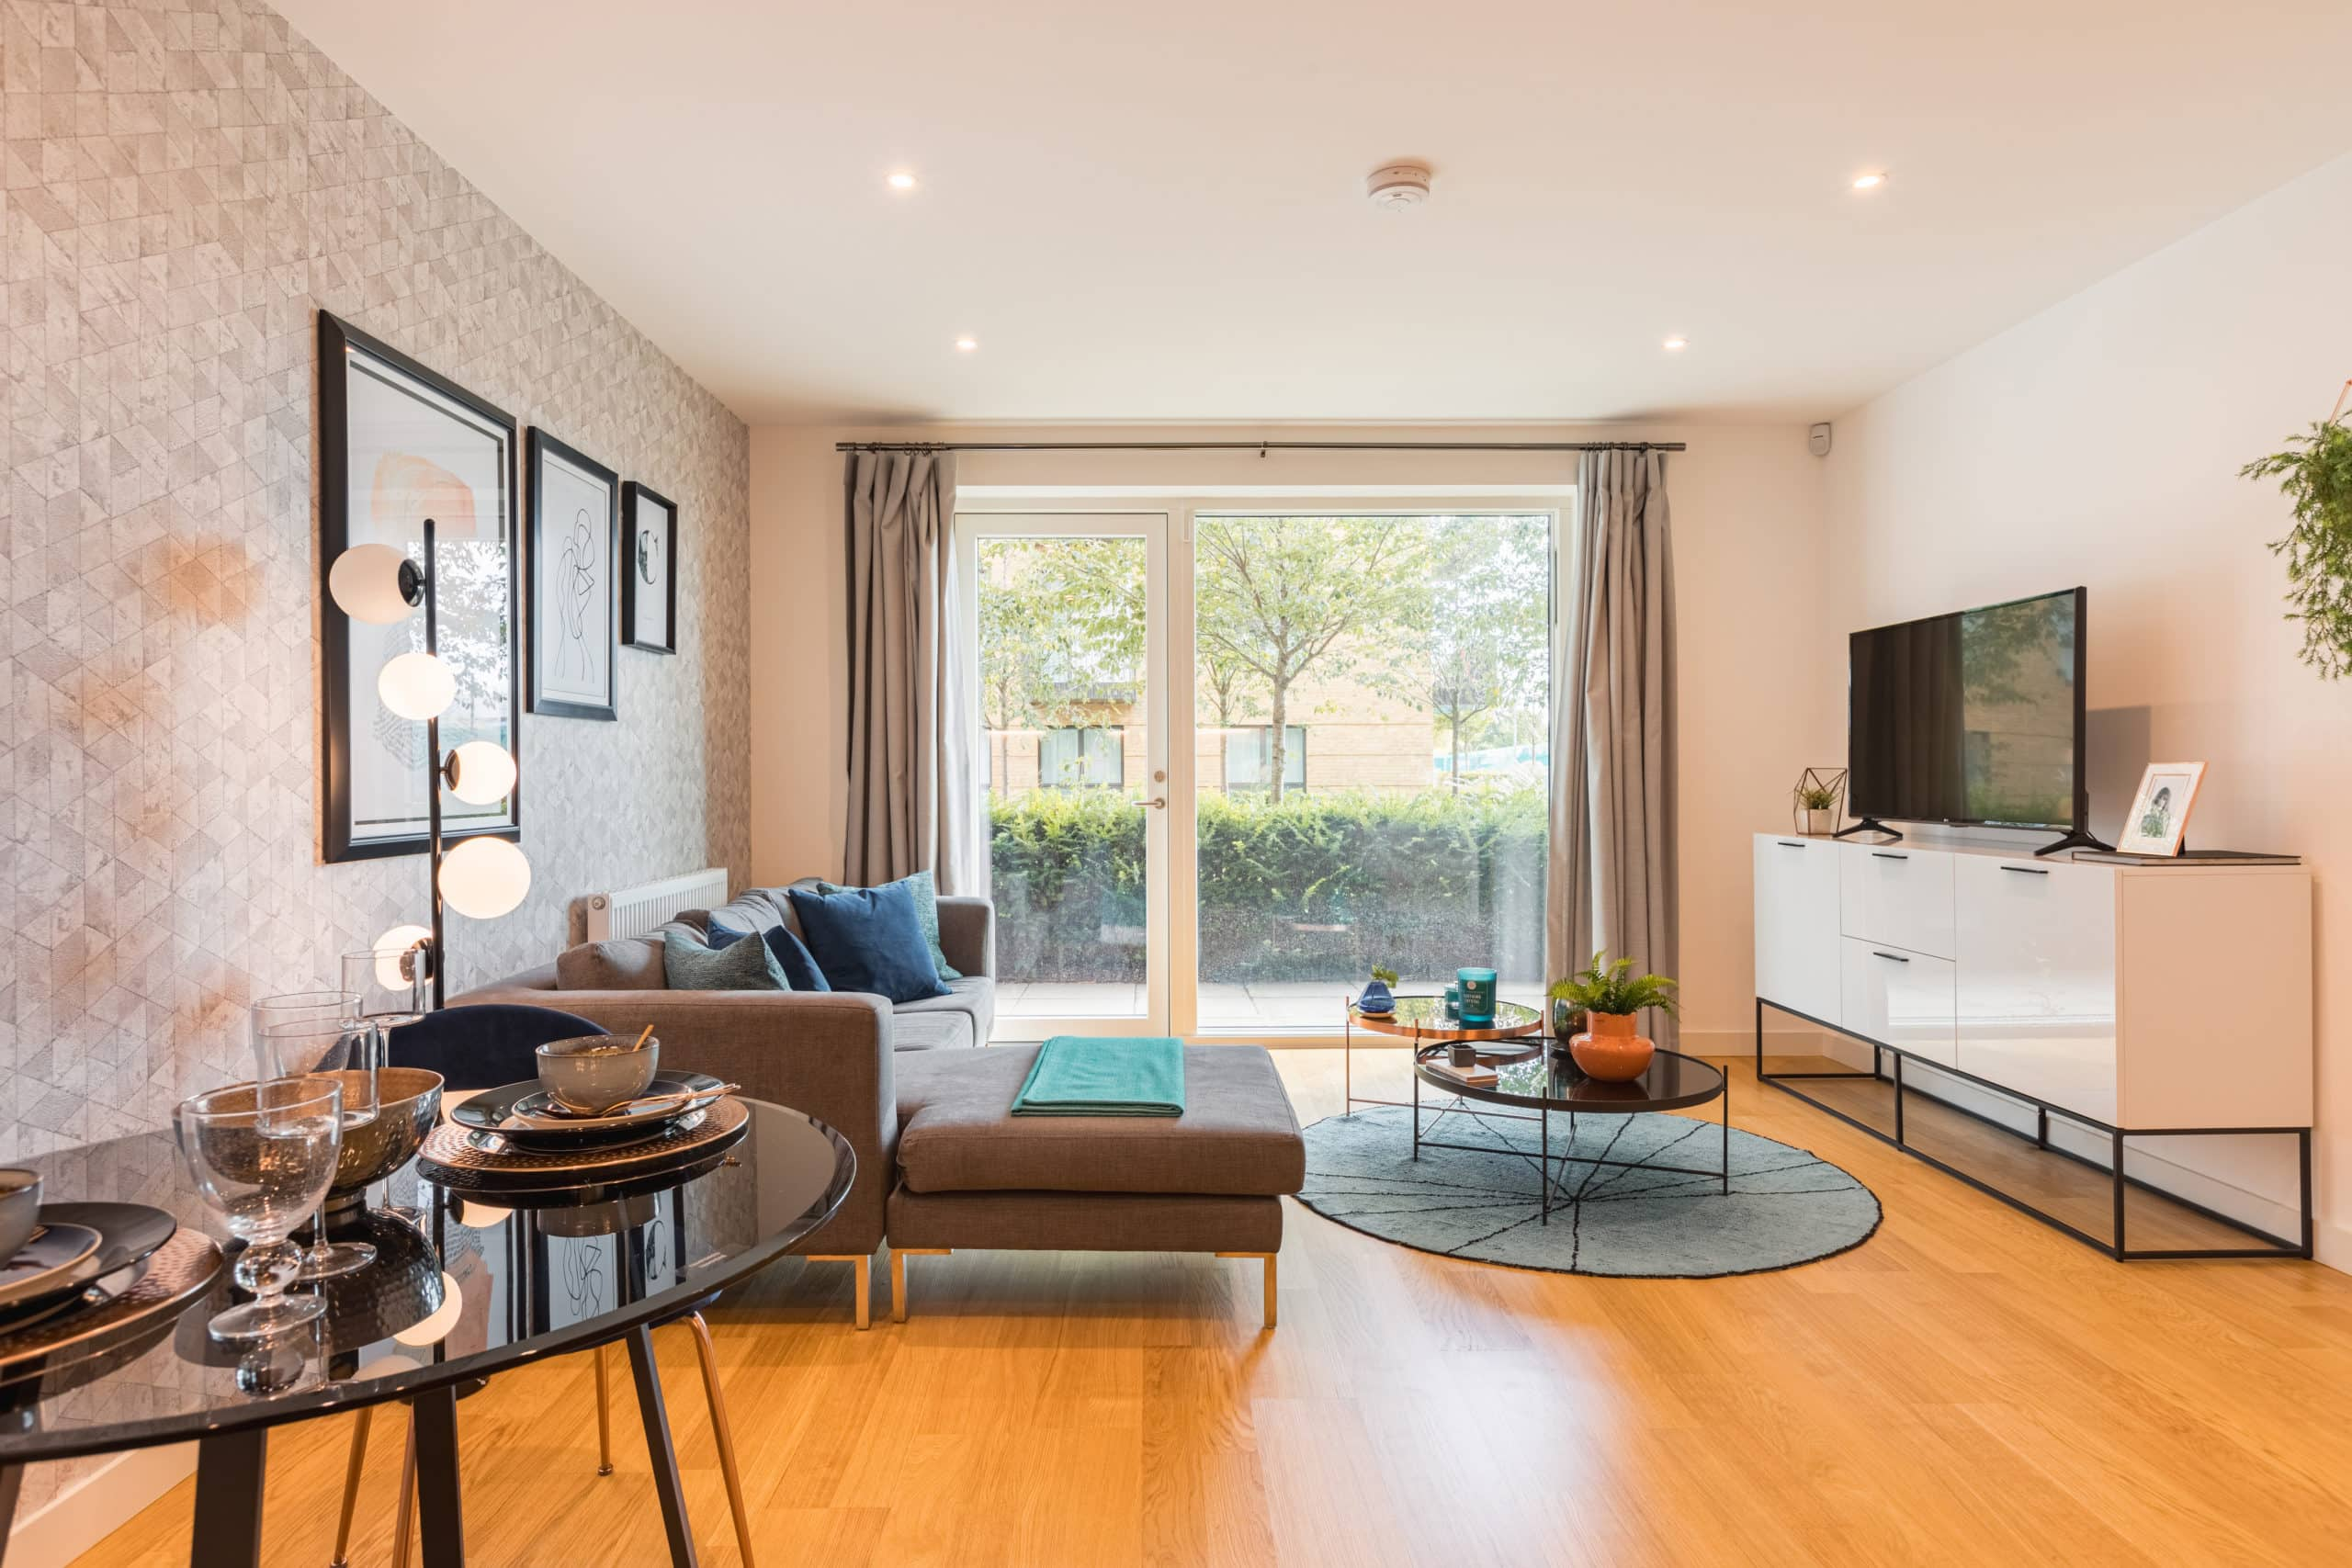 Interior show home photography of Catalyst's ARRO development - Shared Ownership and Help to Buy homes available on Share to Buy